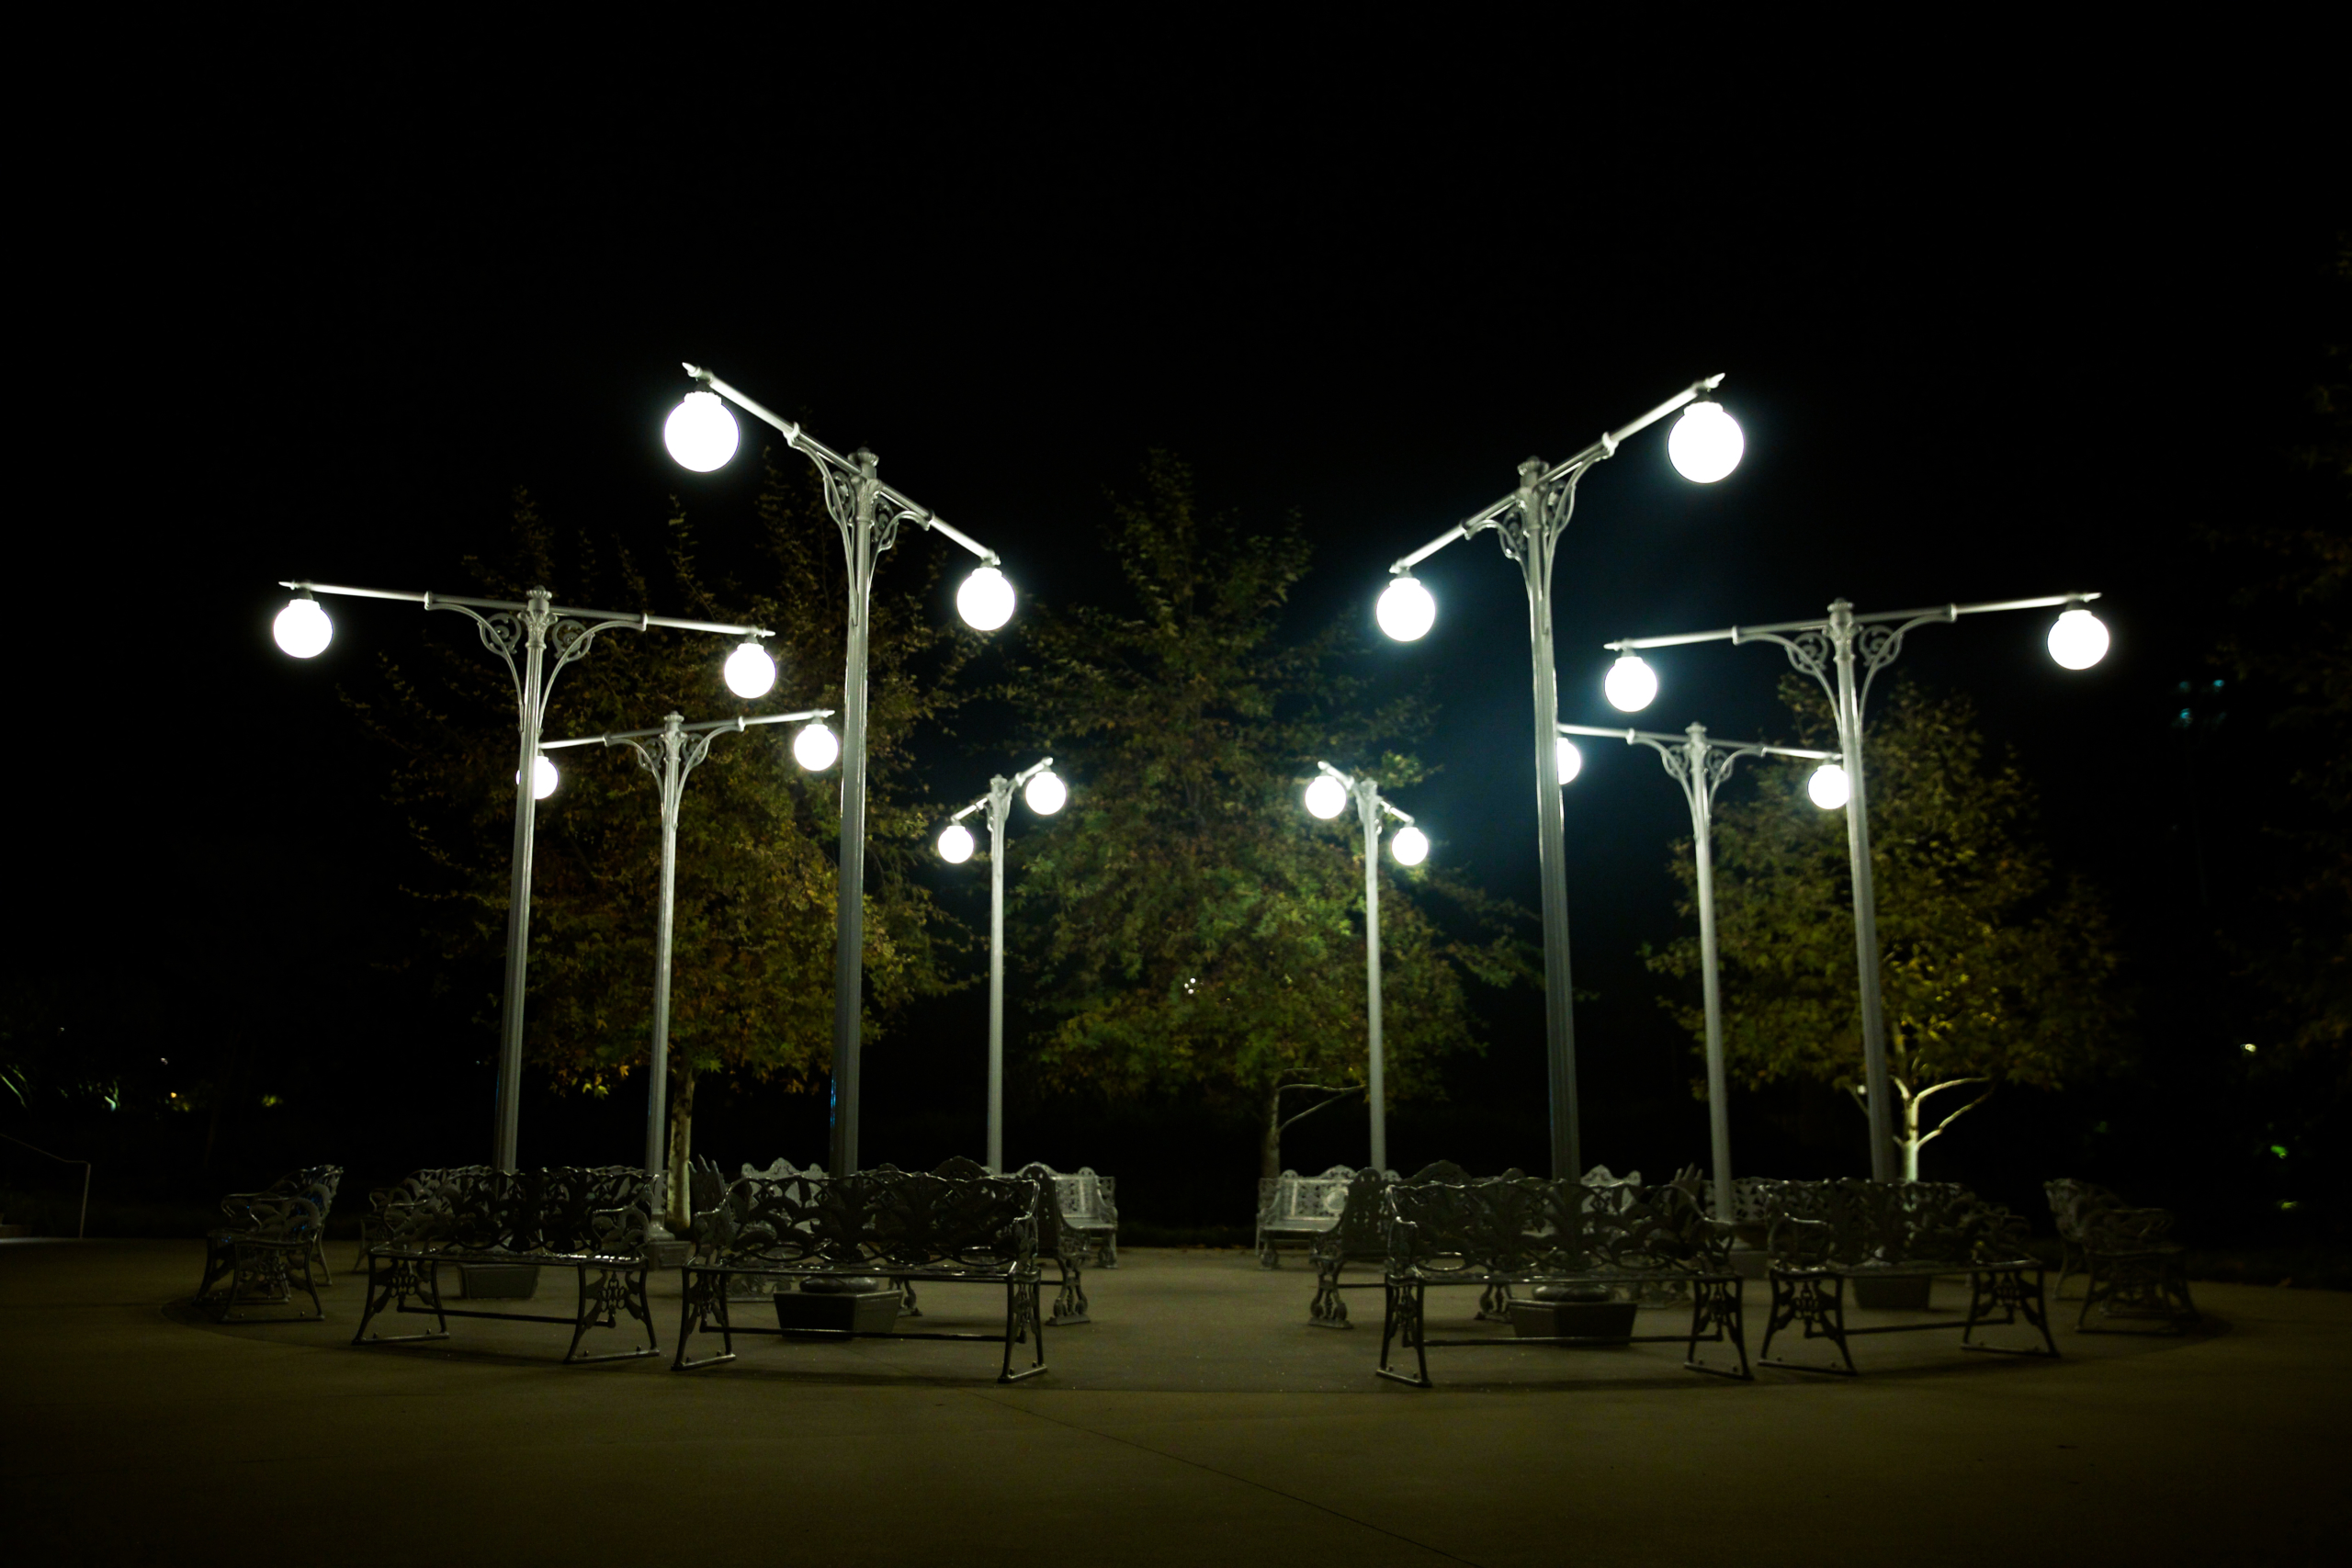 Street lamps and benches arranged in a circle.